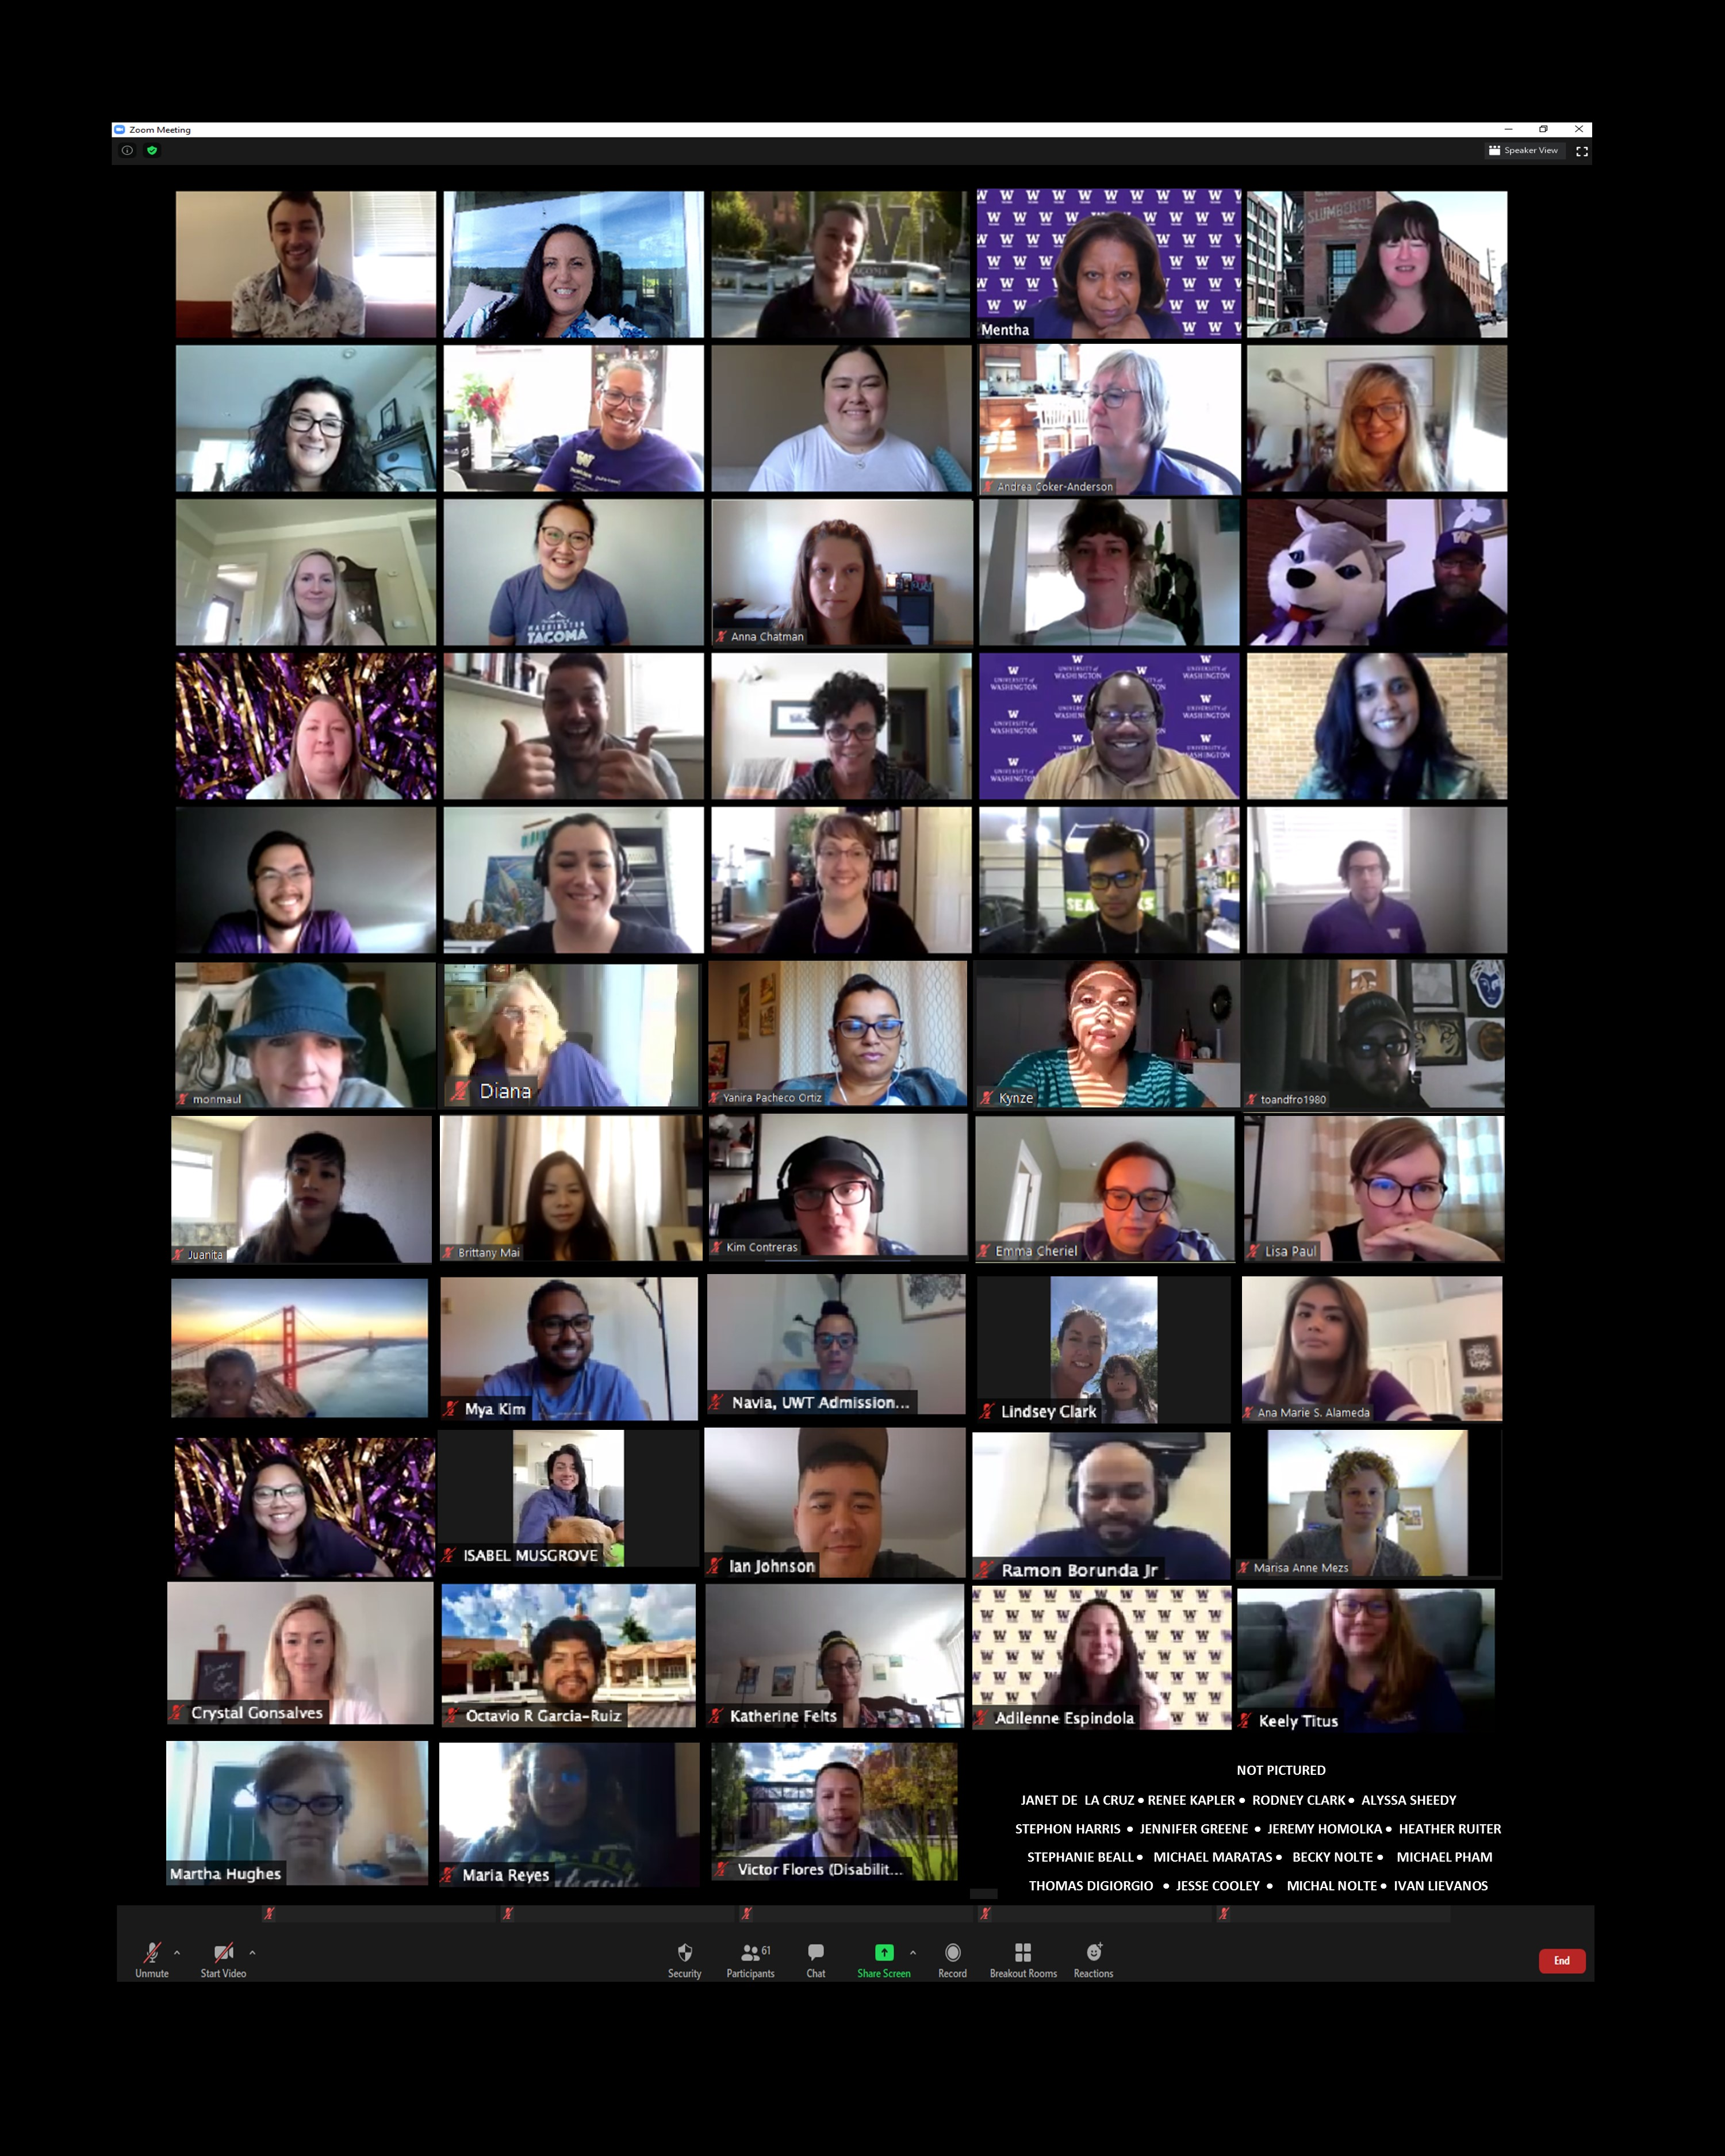 Image showing all student affairs staff members on Zoom